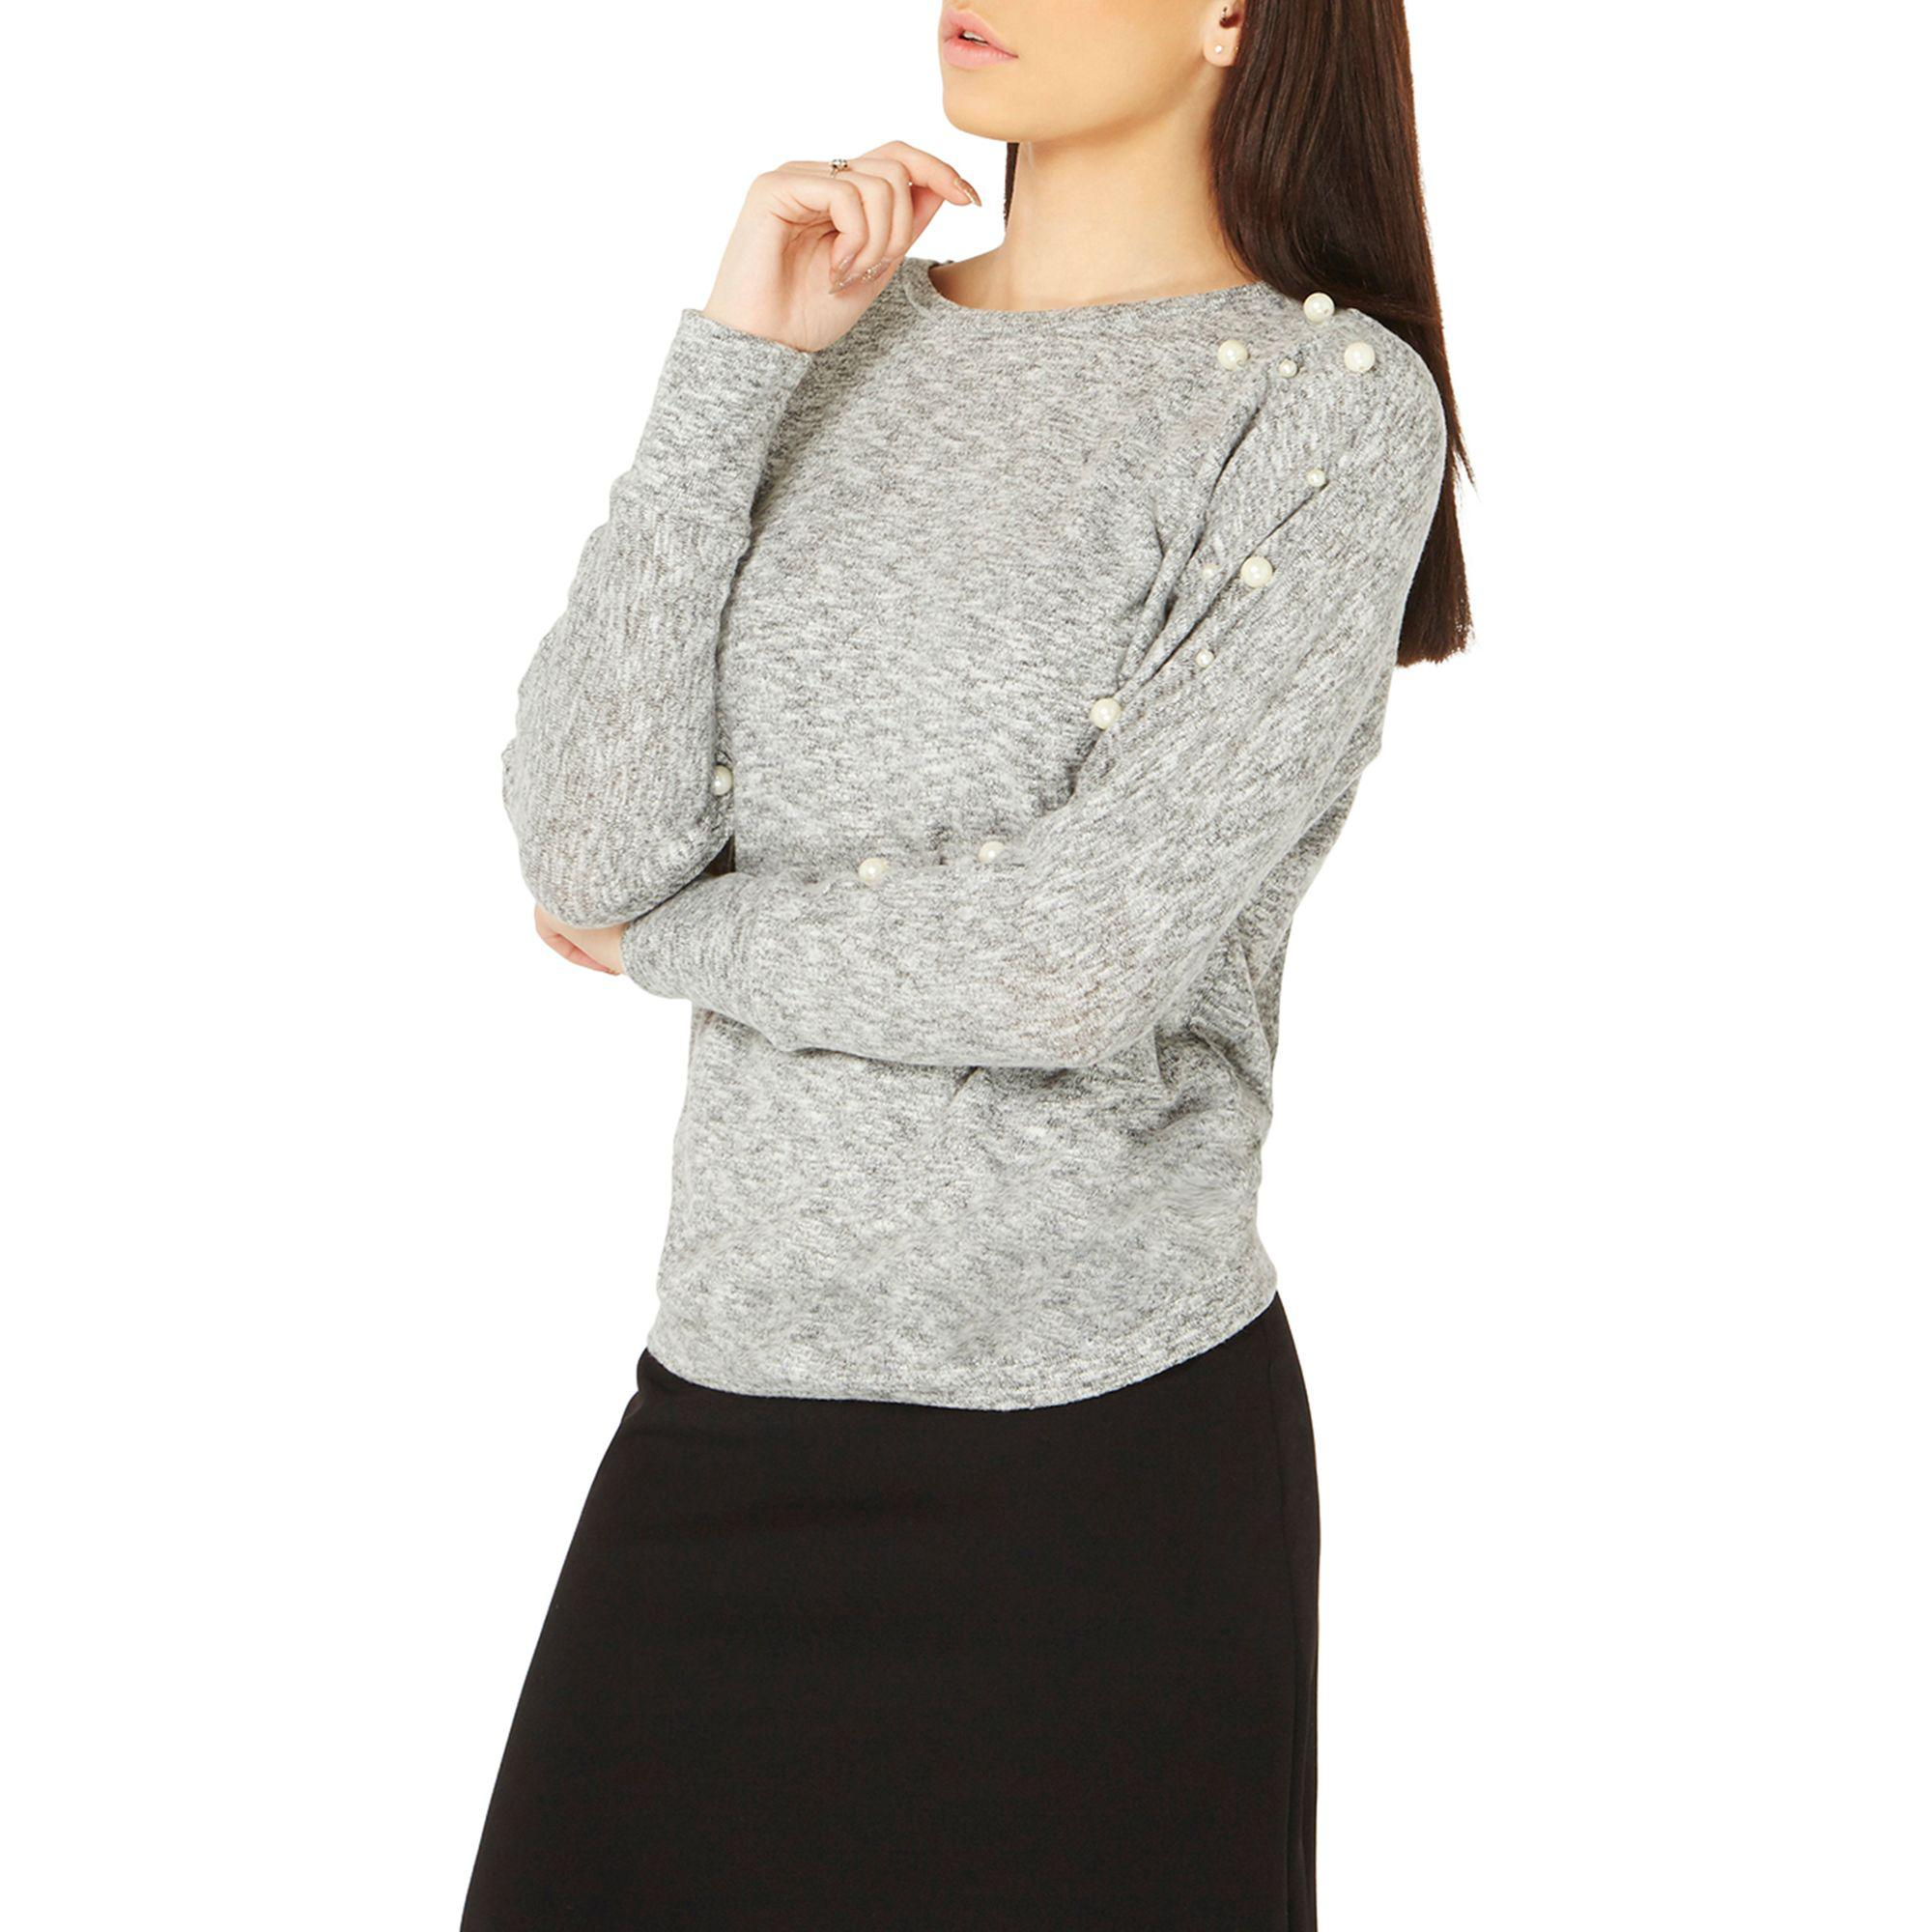 Discount Visit New Free Shipping Official Site Dorothy Perkins Womens Pearl Sleeve Sweat Top- Cheap Sale Factory Outlet Original Online Outlet 2018 UgYbGKn